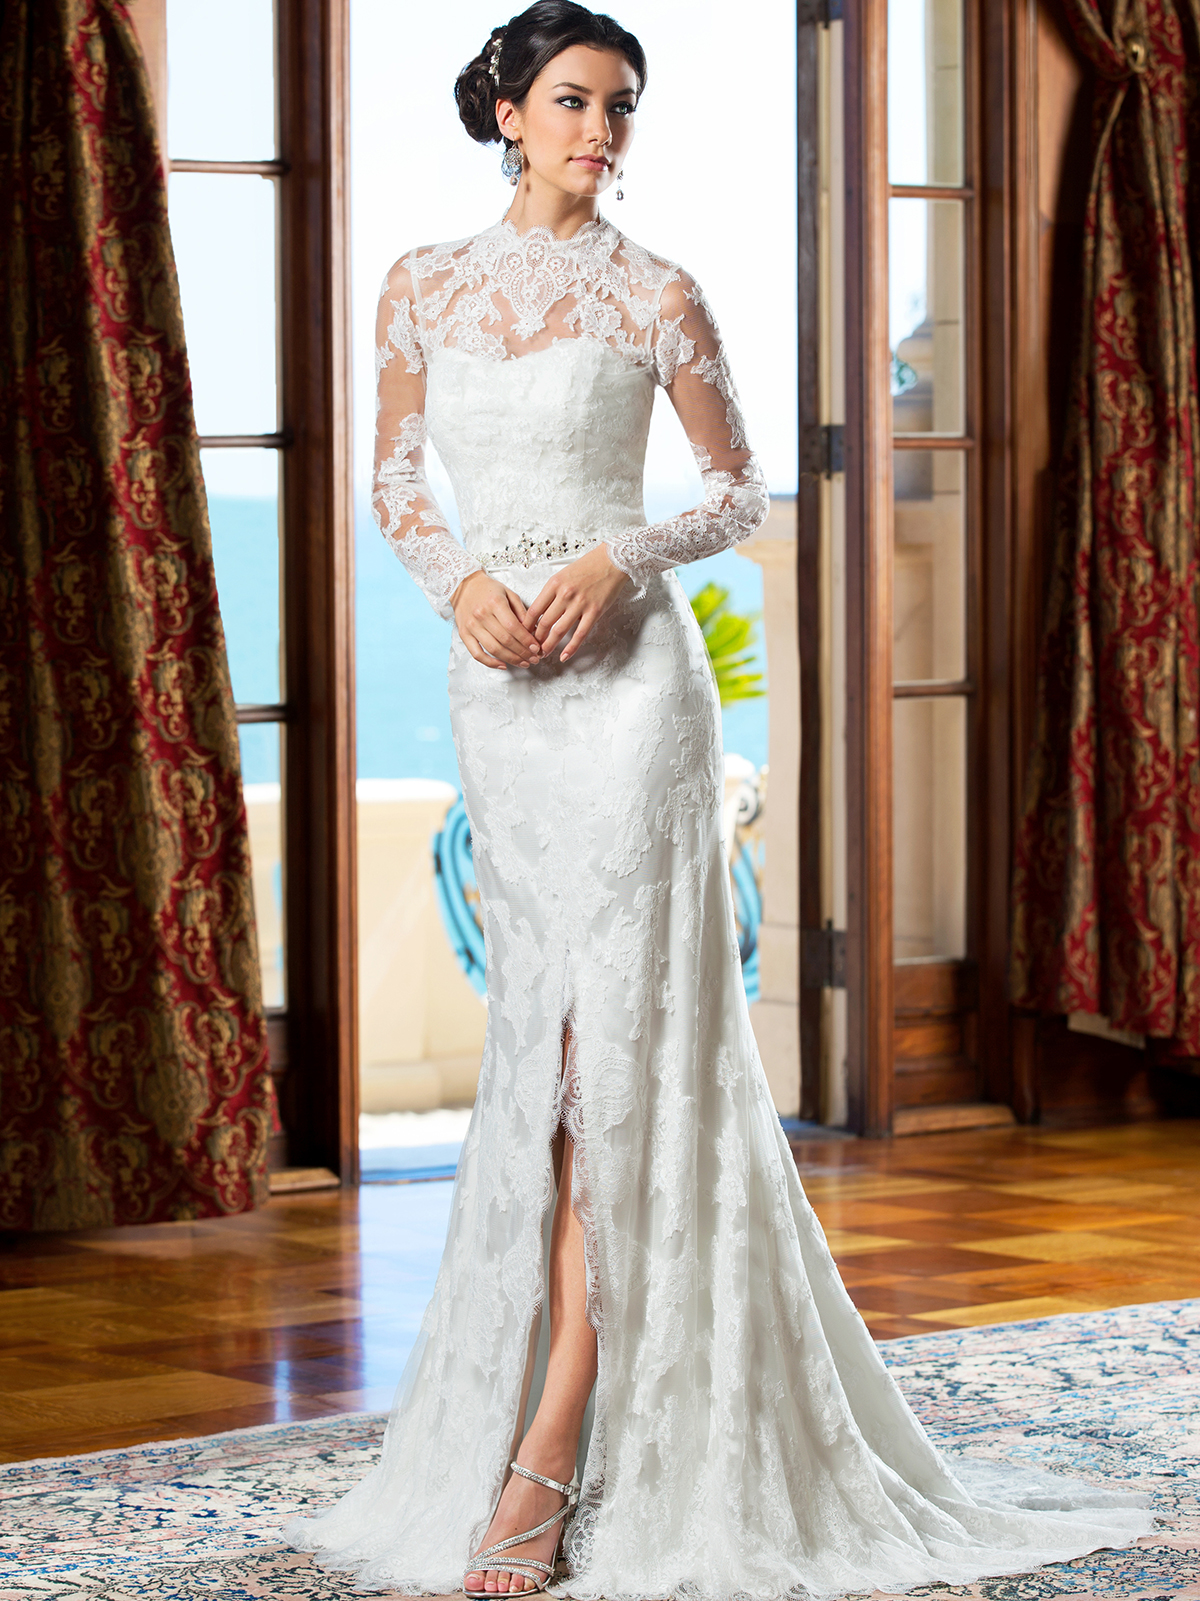 wedding dresses lace sleeved kitty chen wedding dress doris day k1410